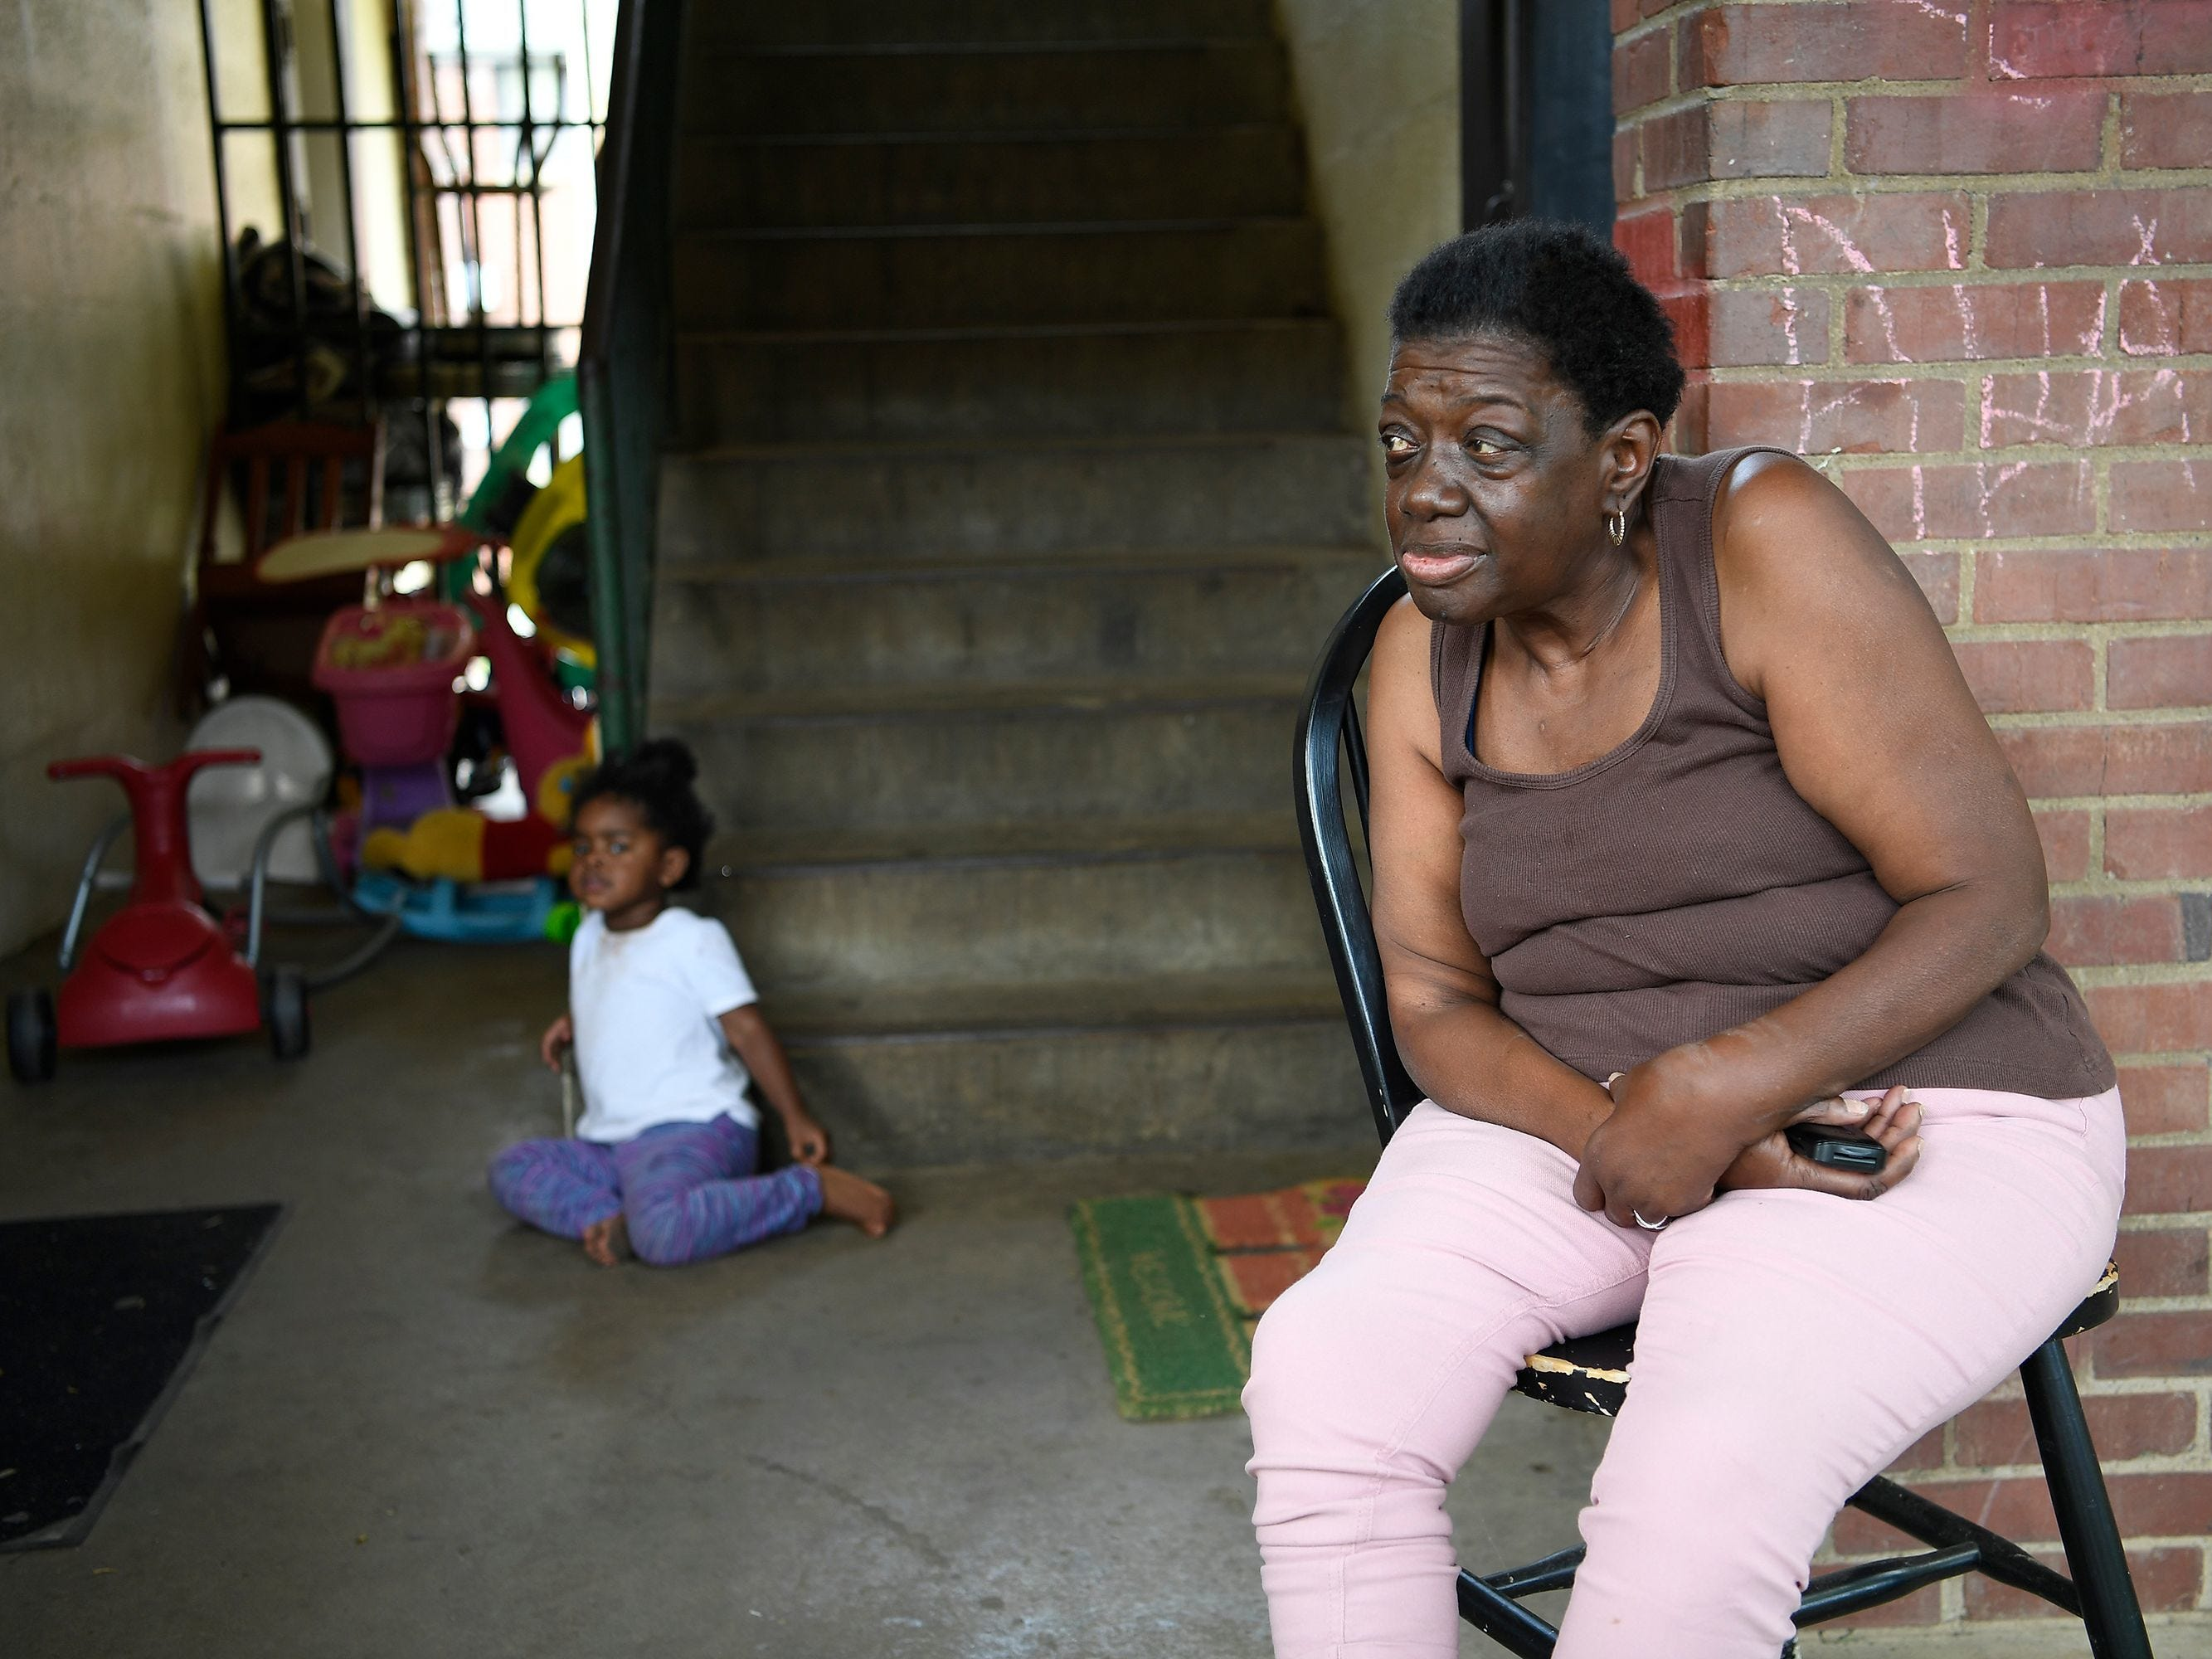 James A. Cayce Homes resident Shirley Payne, 68, sits with her great-granddaughter Marriana Simmons, 2, on May 12, 2017.